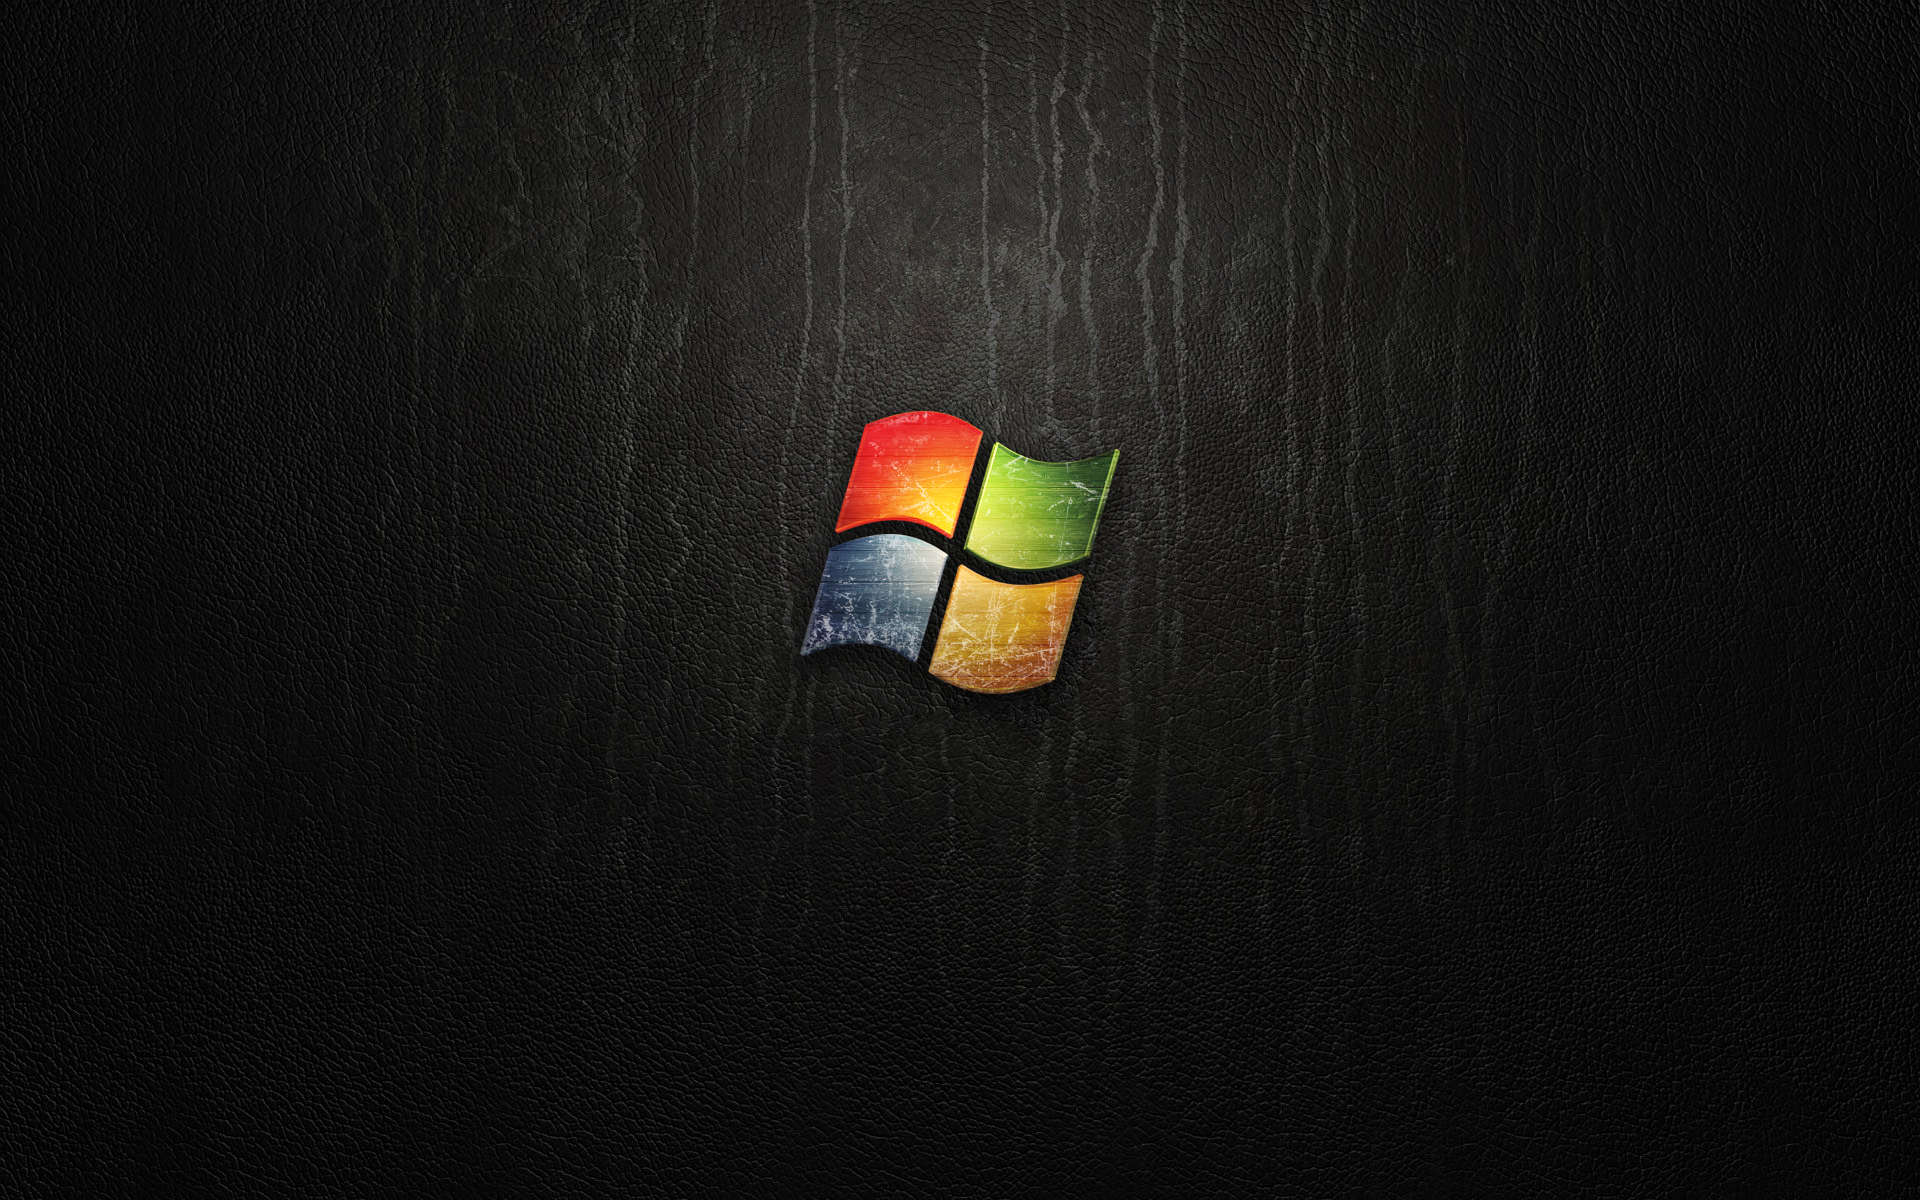 Windows Wallpaper · Windows Wallpaper ...